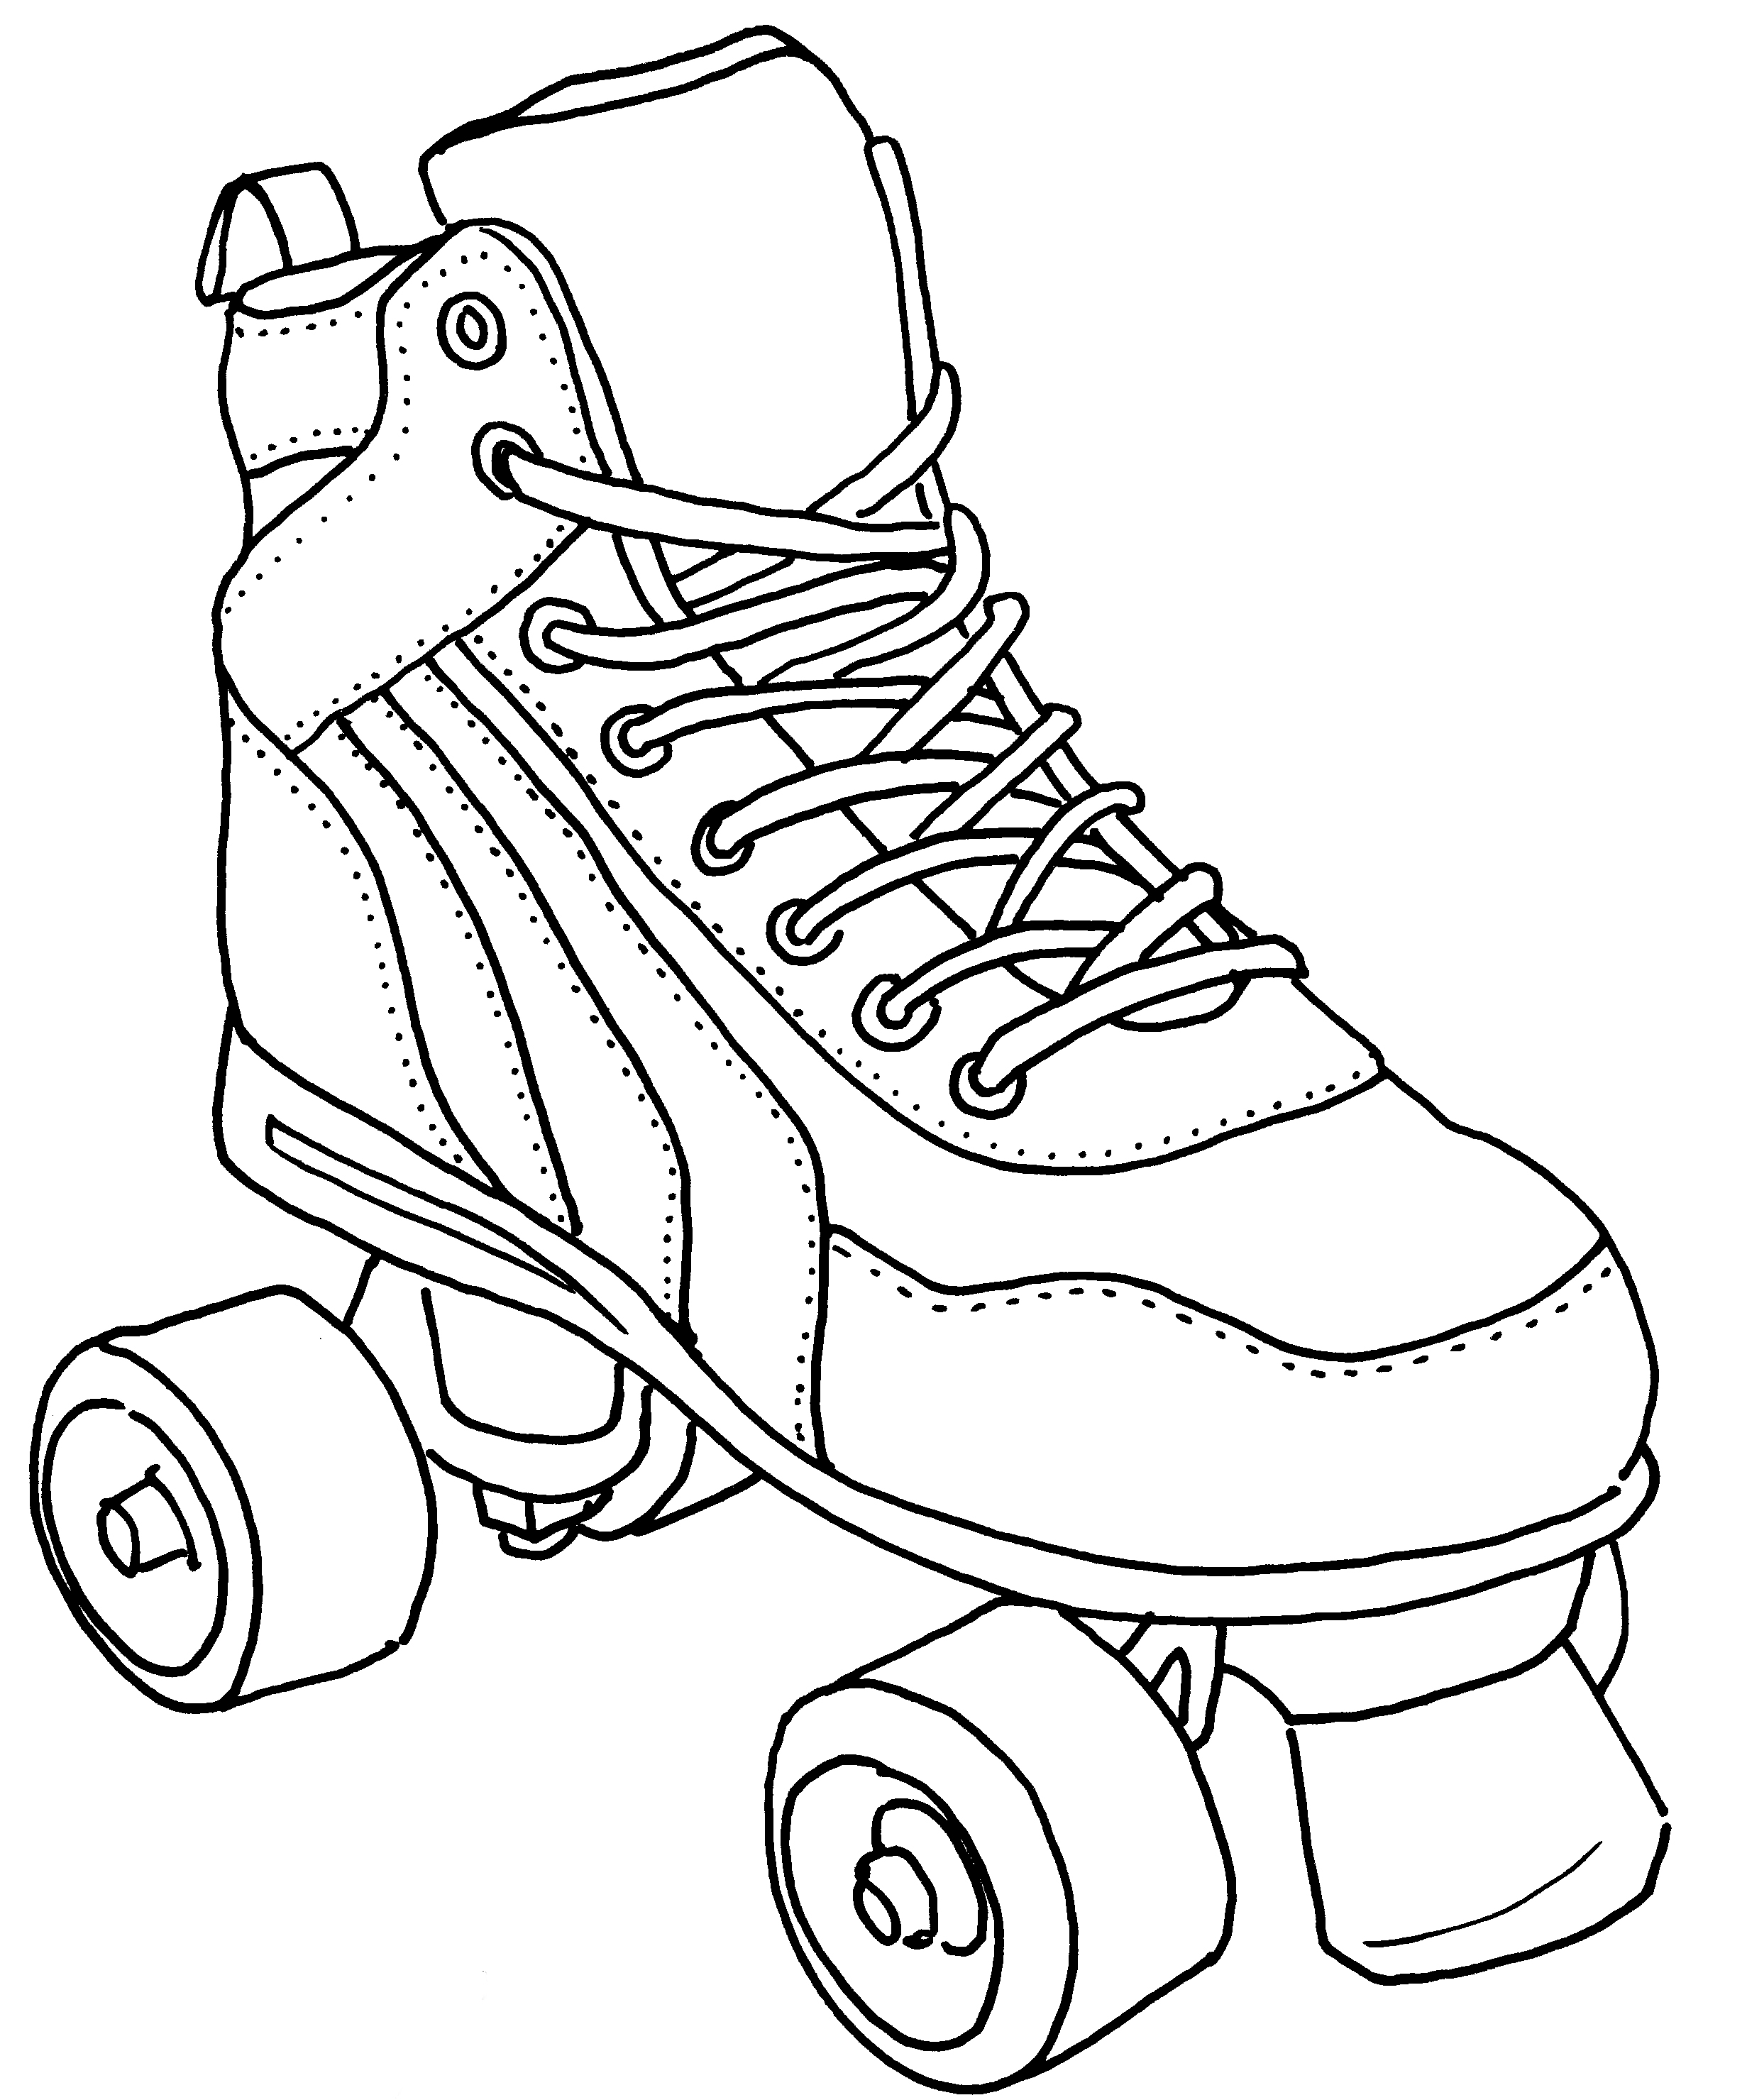 Image 2   Rollerboot   Click Image To Download